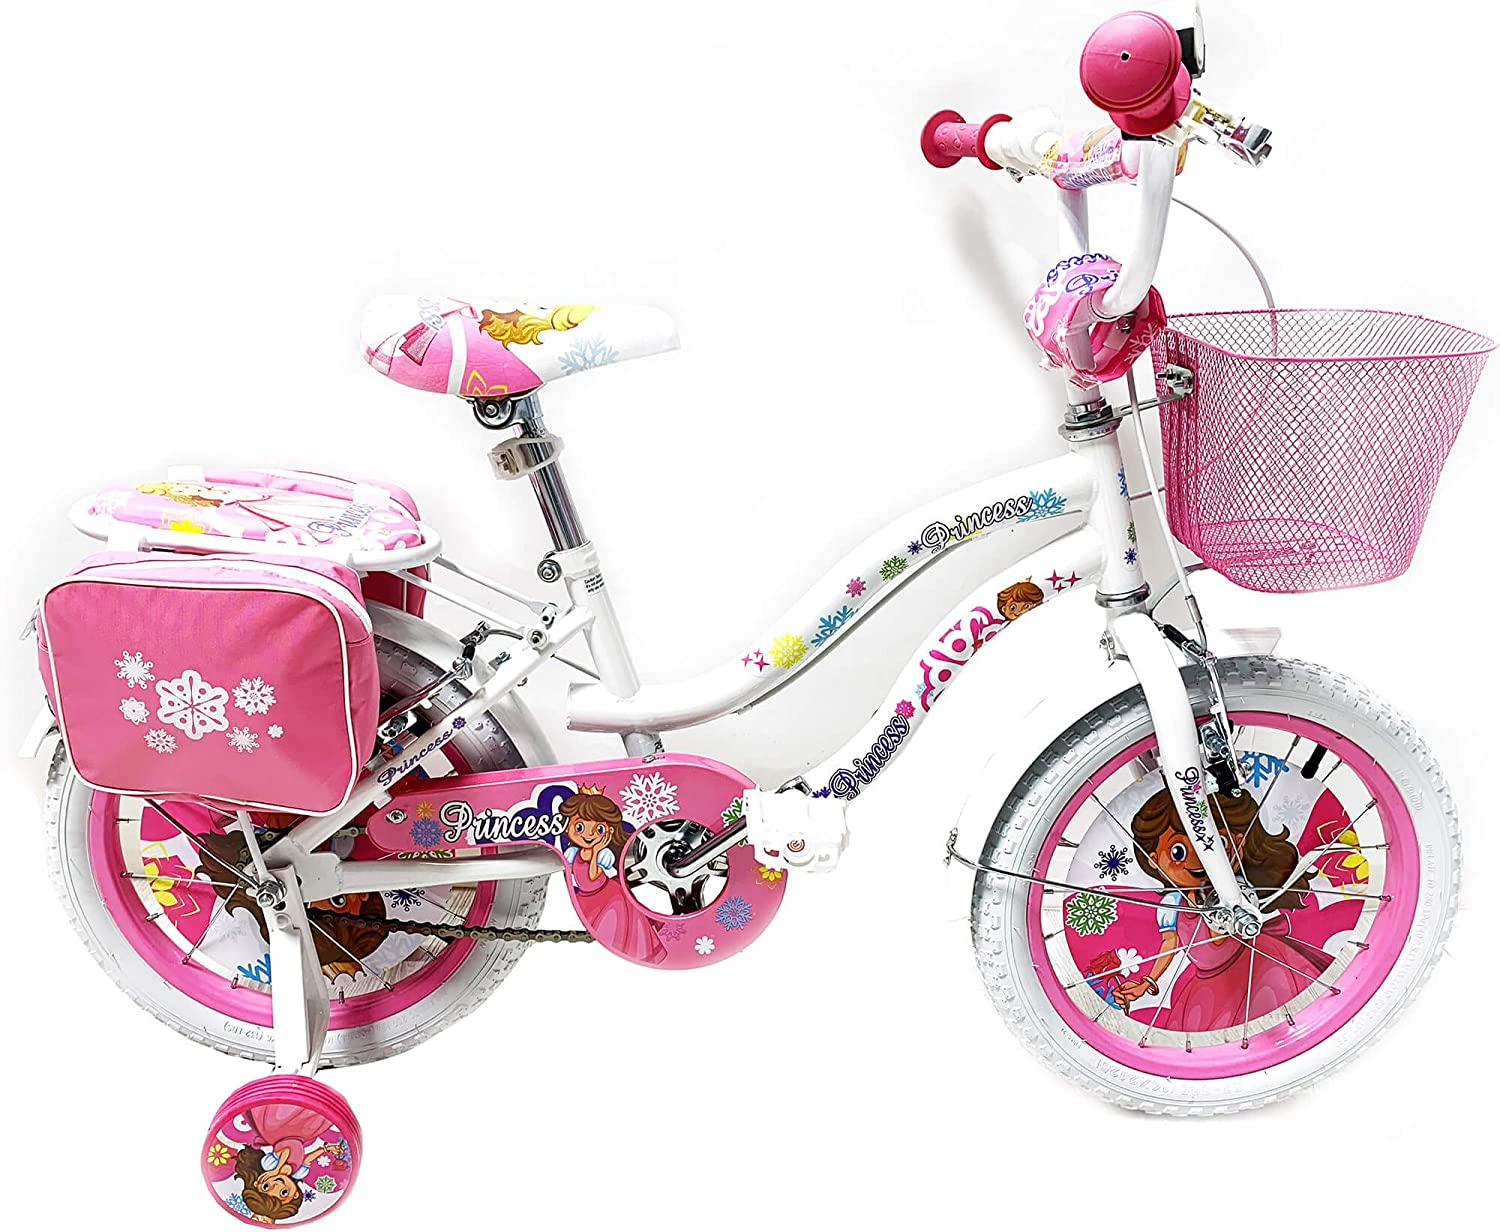 Reset Girls Bike 16 2 Brakes Princess White and Pink